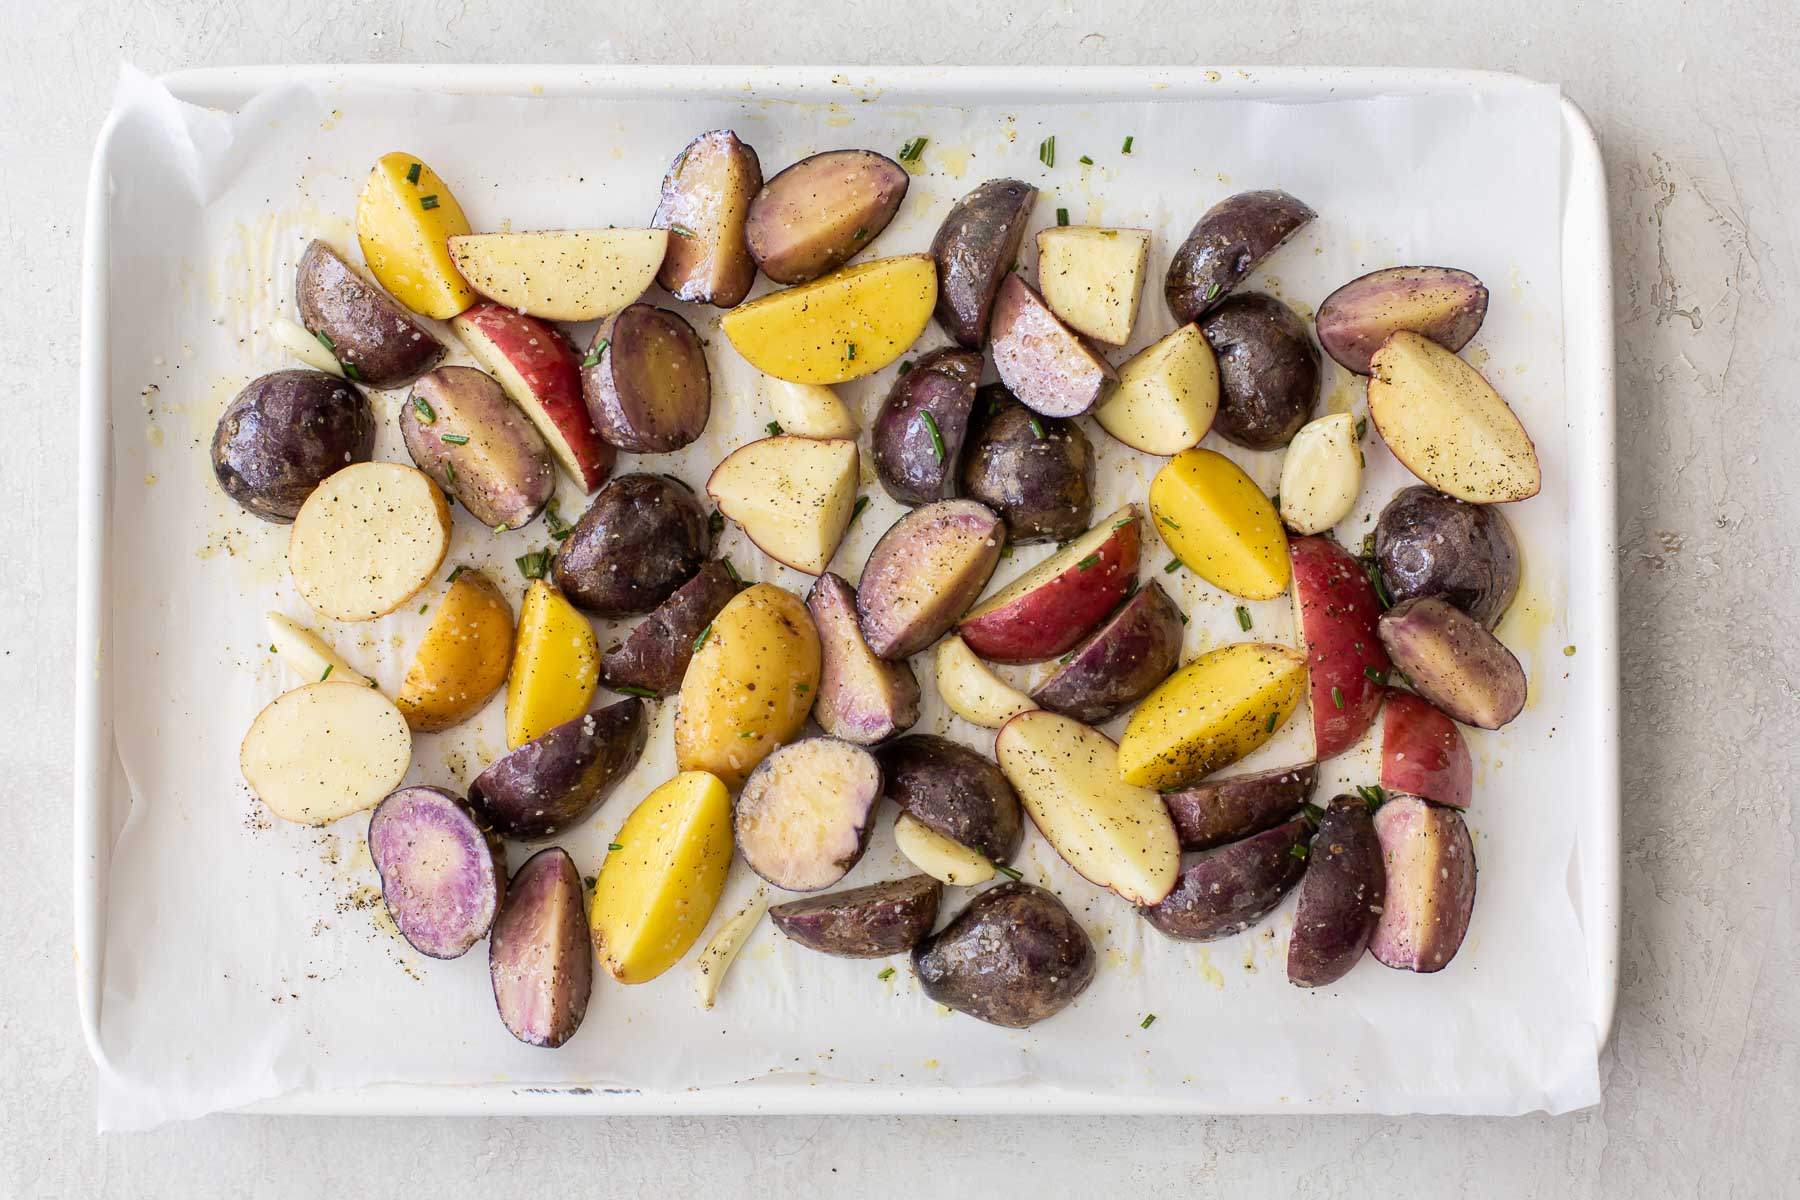 potatoes and garlic cloves tossed with olive oil and seasonings on baking sheet